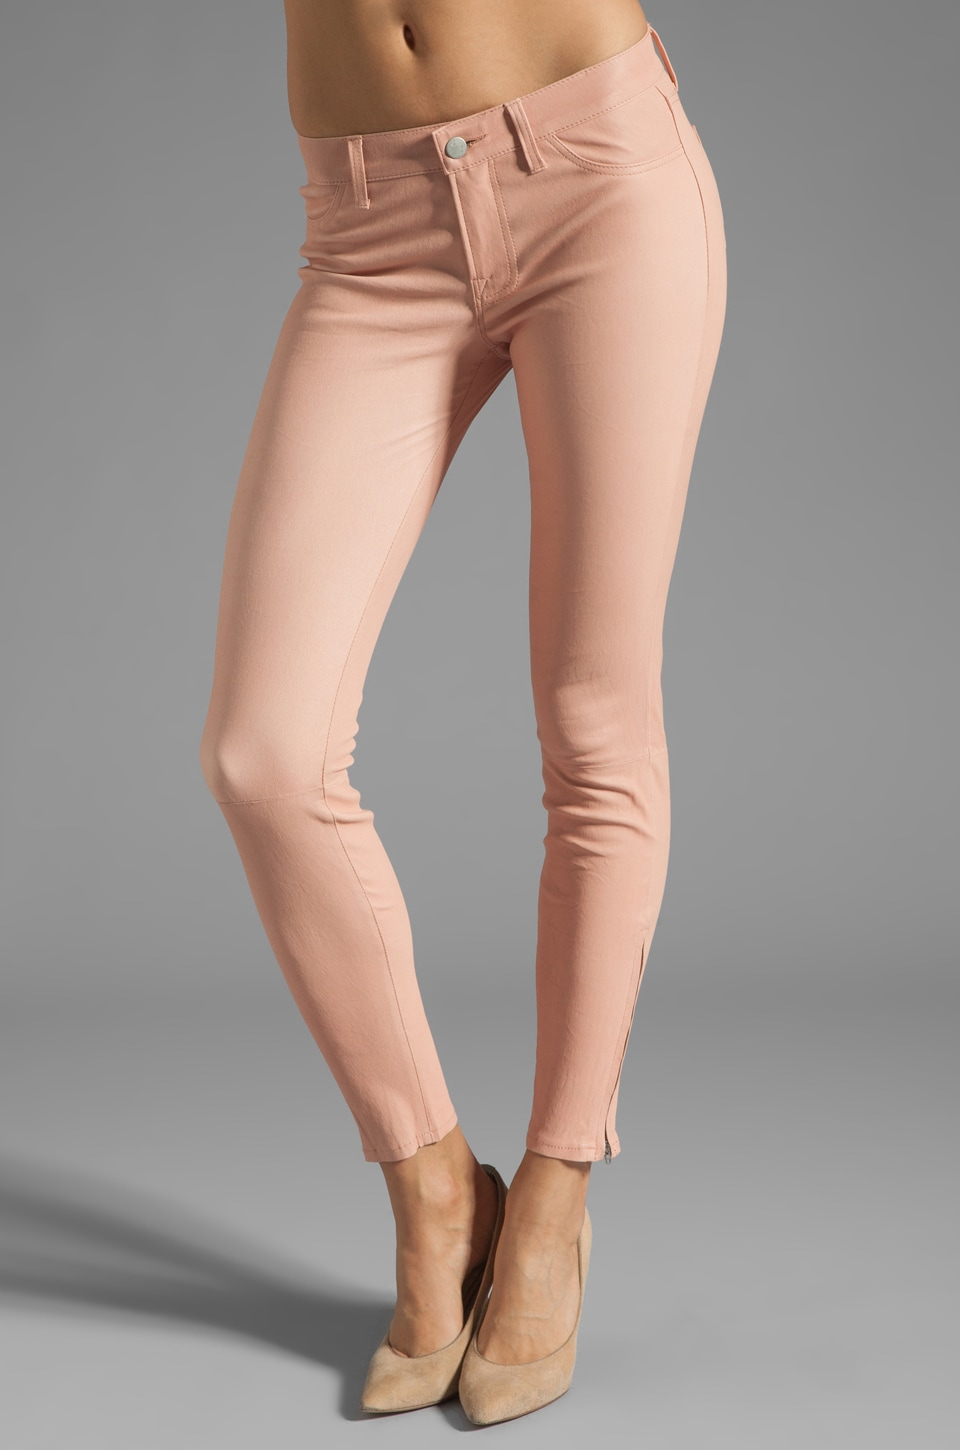 J Brand Super Skinny Leather in Blossom